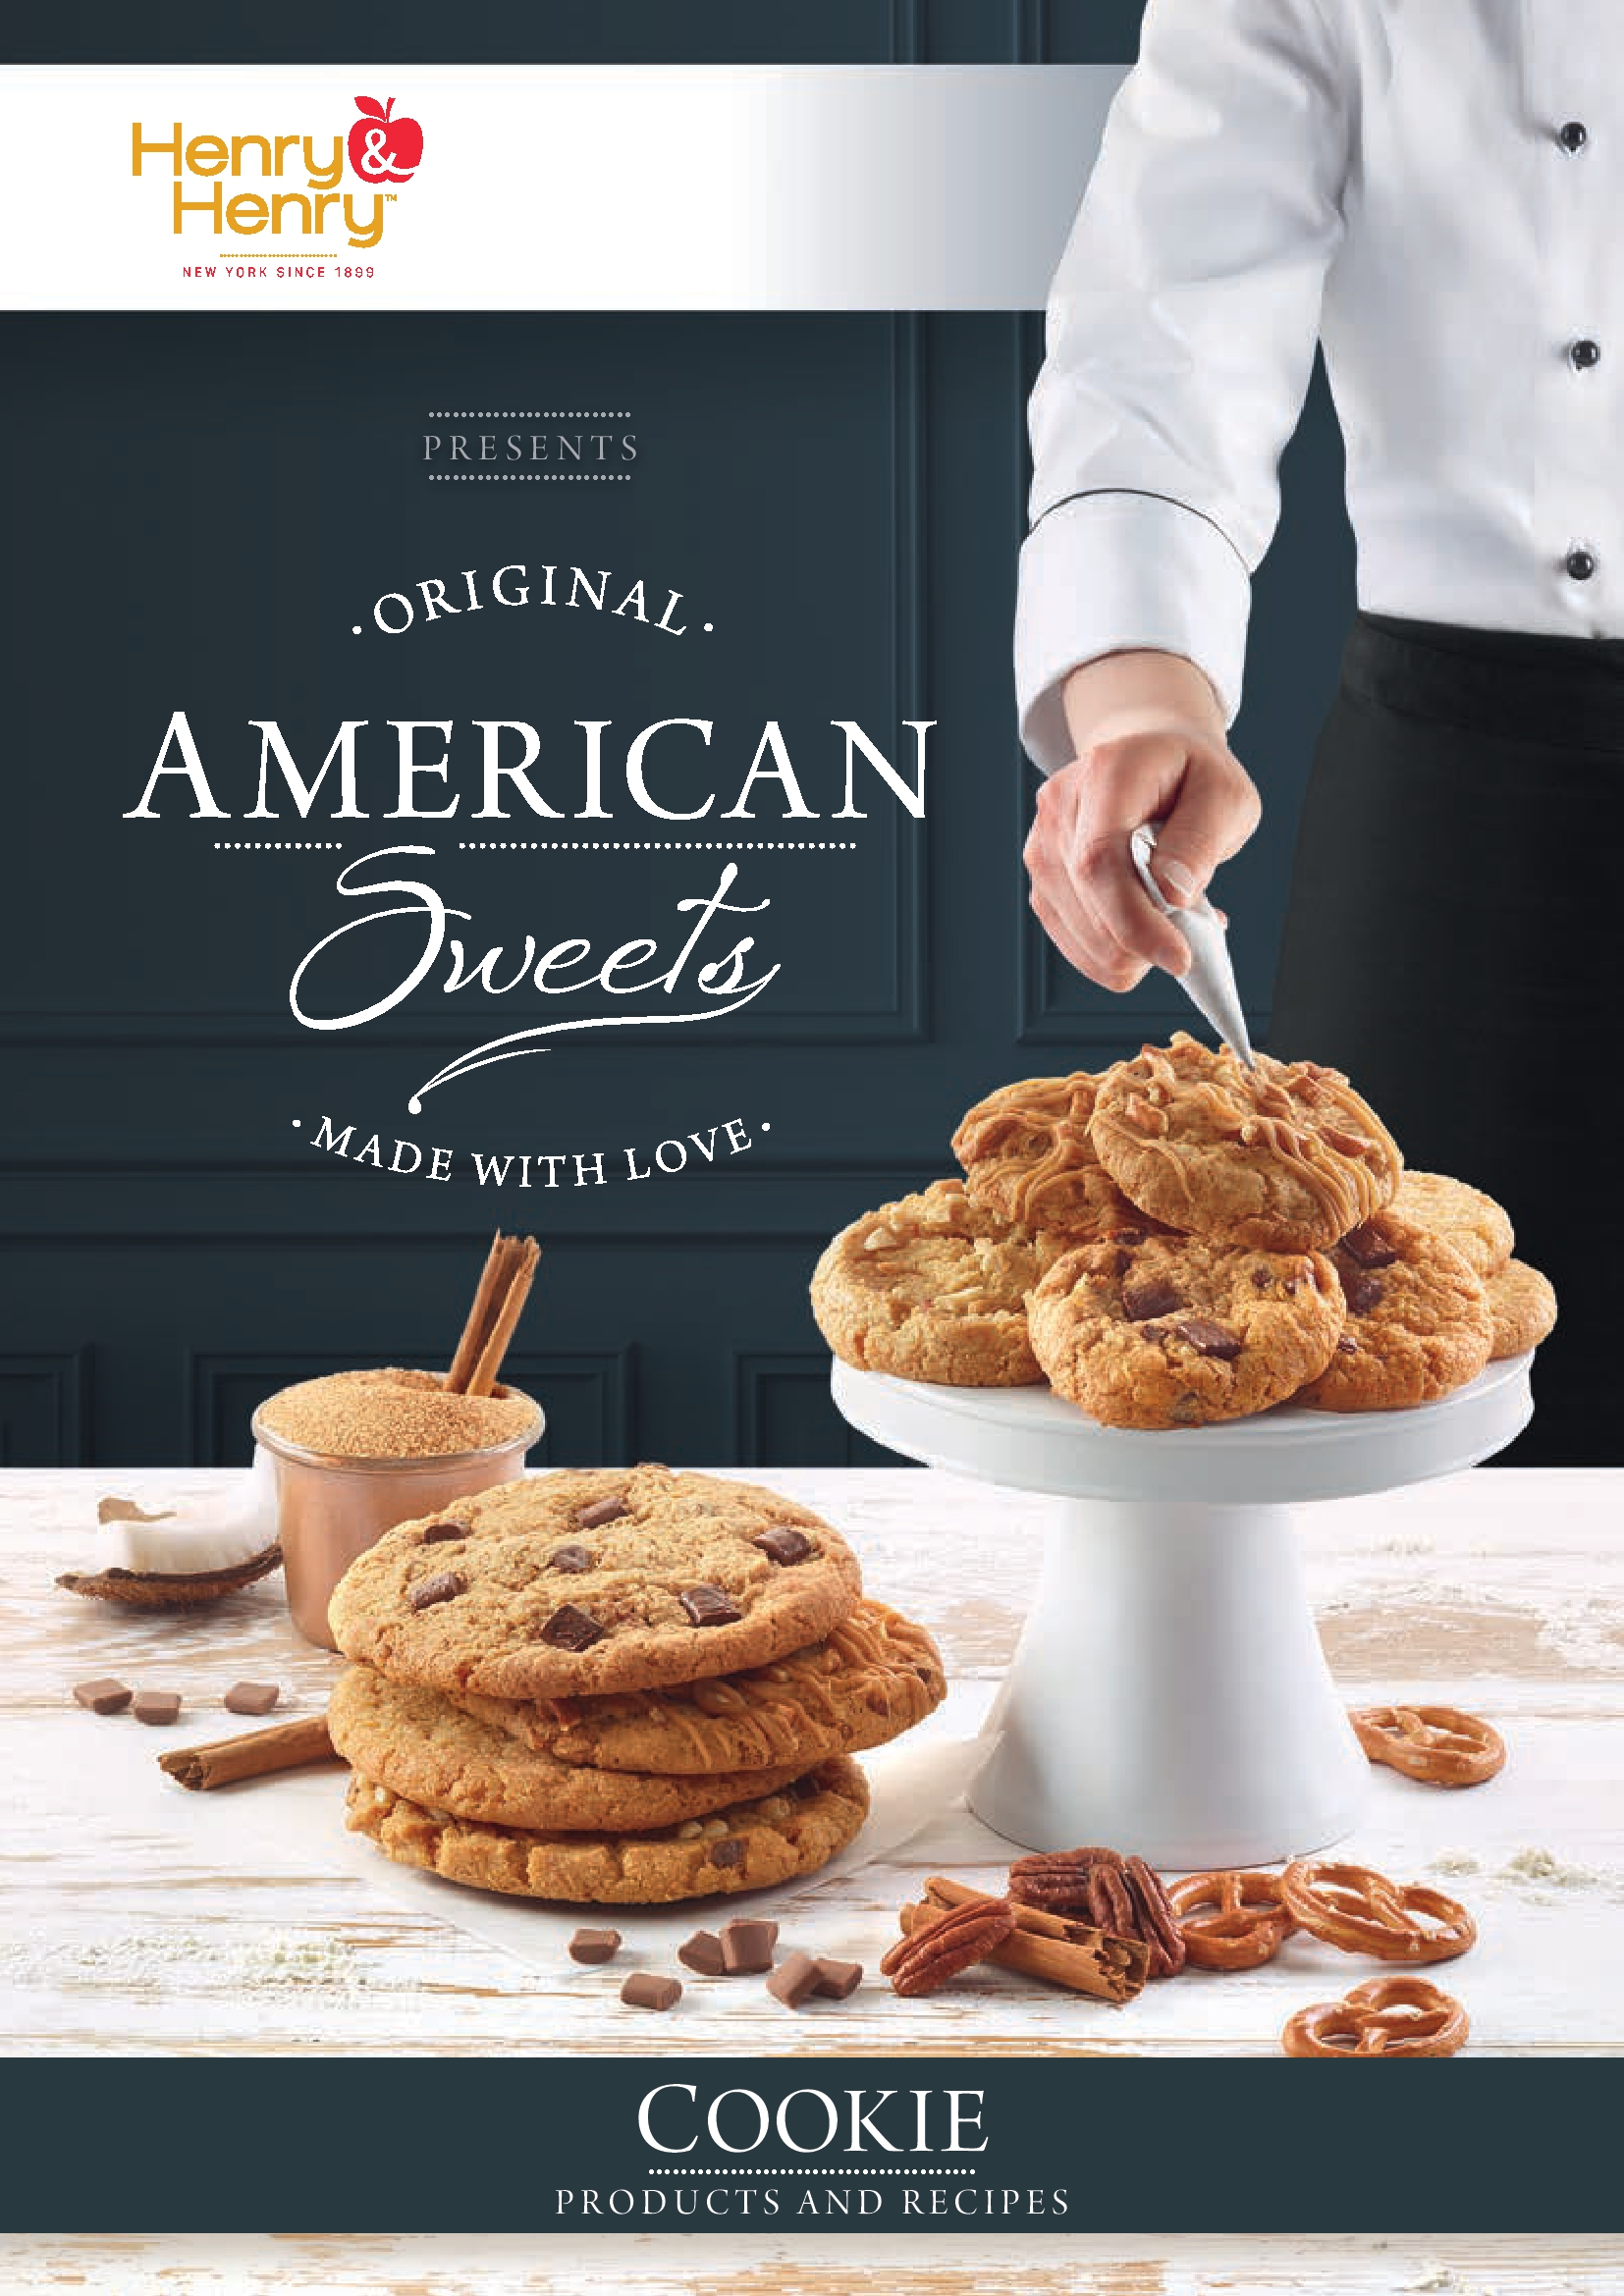 RZ_23356007_American_Sweets_Cookie_EN (2)0001